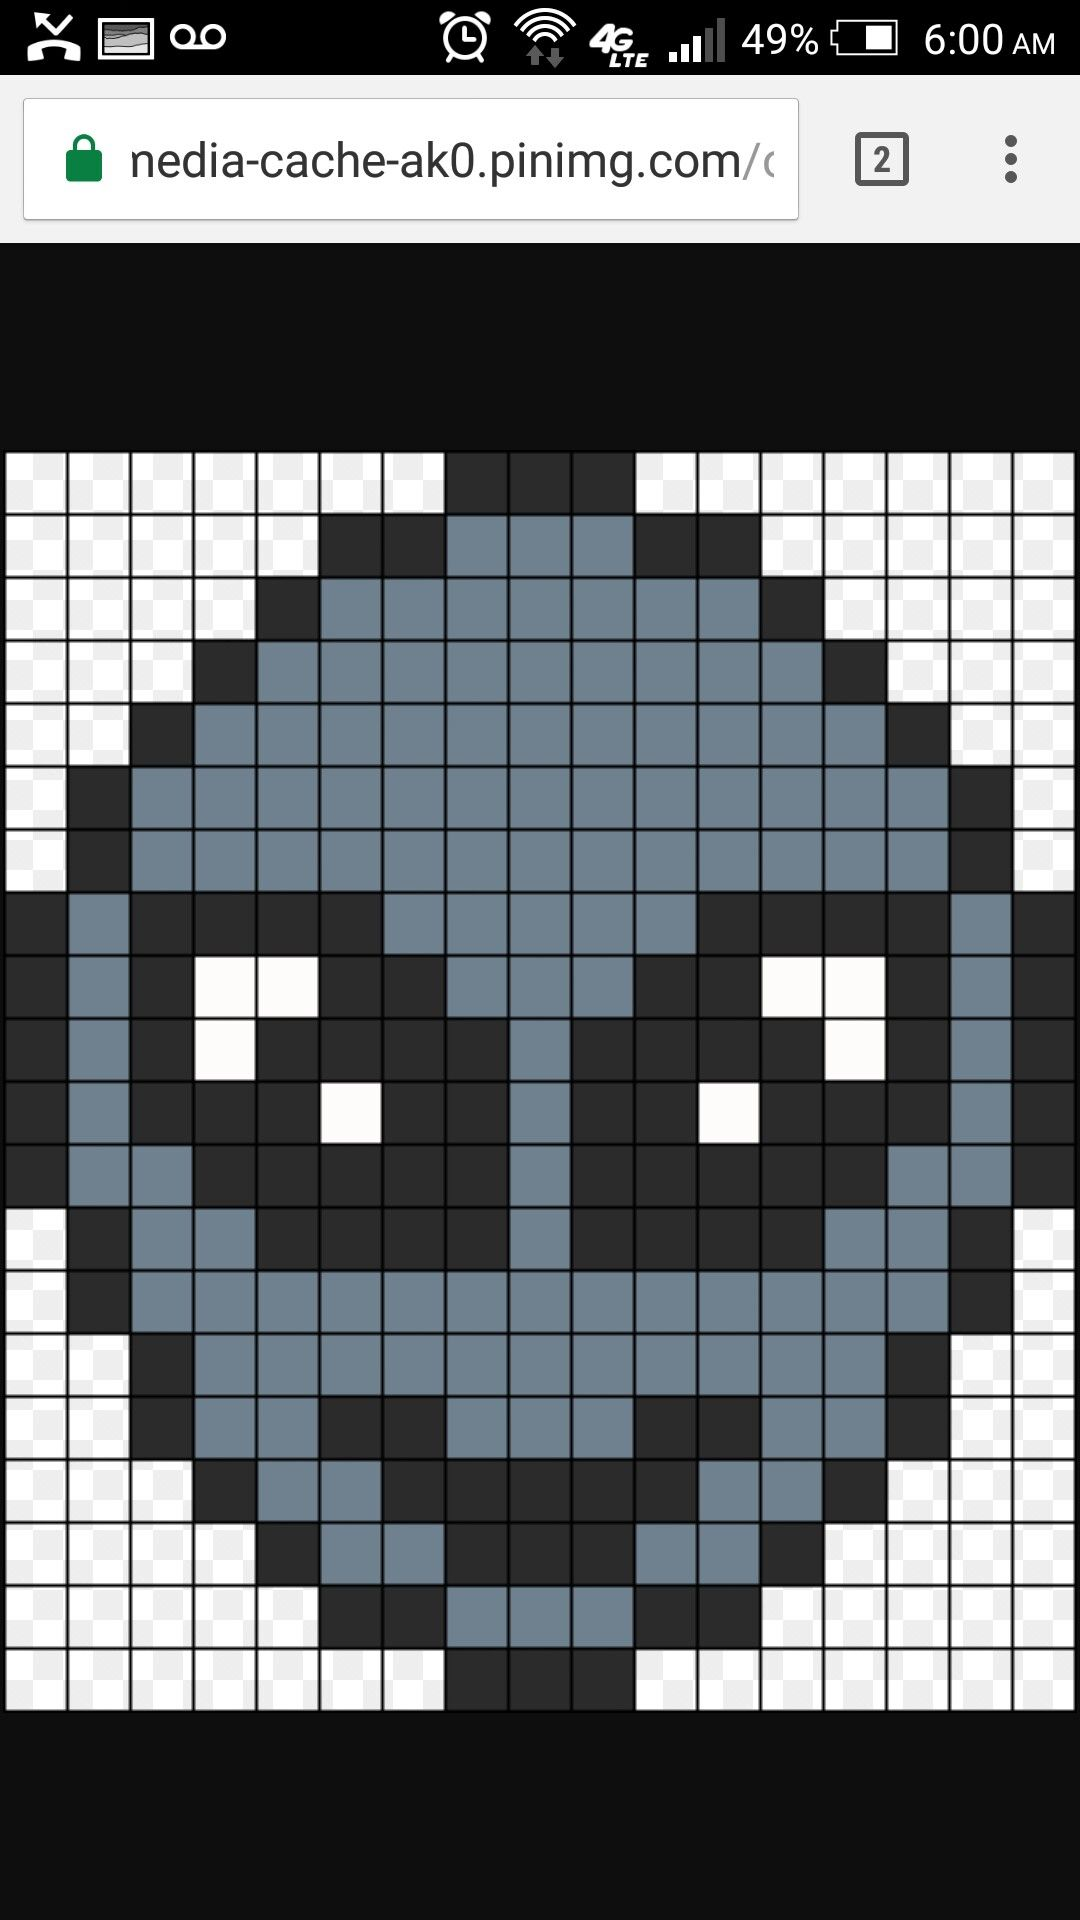 emoji patterns fuse beads hama beads pearl beads fuse bead patterns kandi patterns alien emoji crossword perler bead emoji